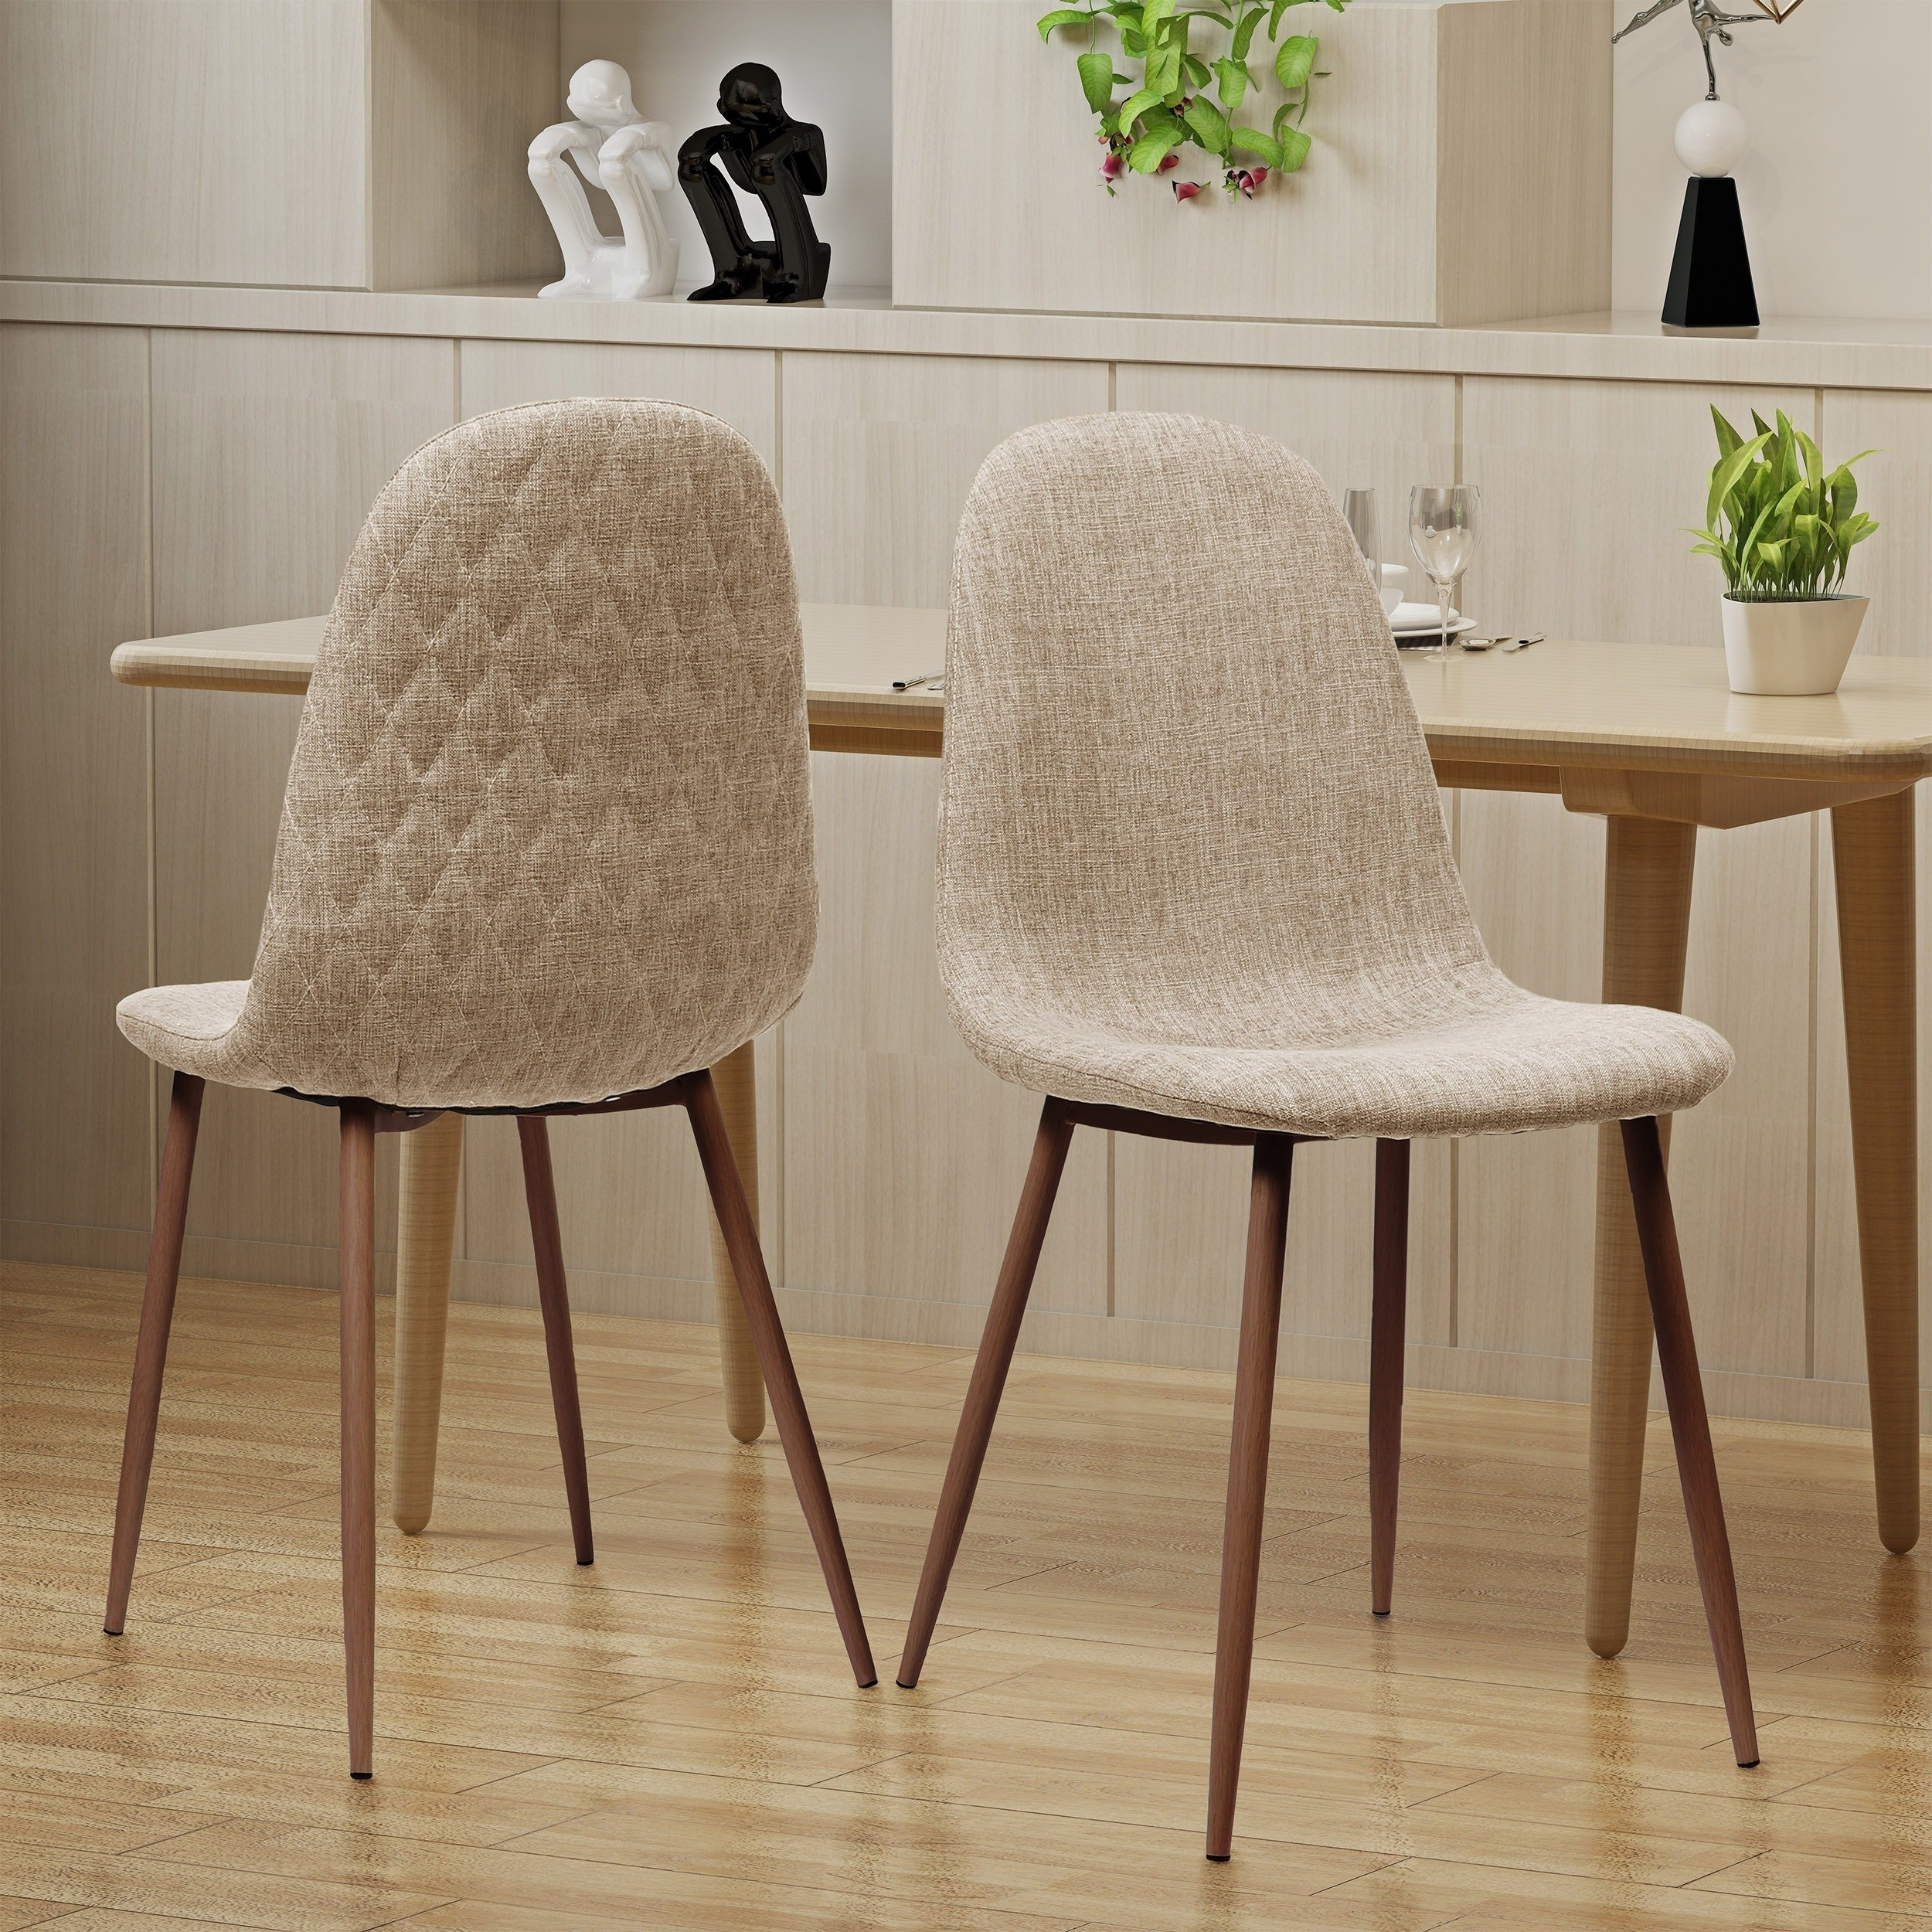 2018 Shop Caden Mid Century Fabric Dining Chair (Set Of 2)Christopher Within Caden 7 Piece Dining Sets With Upholstered Side Chair (Gallery 5 of 25)